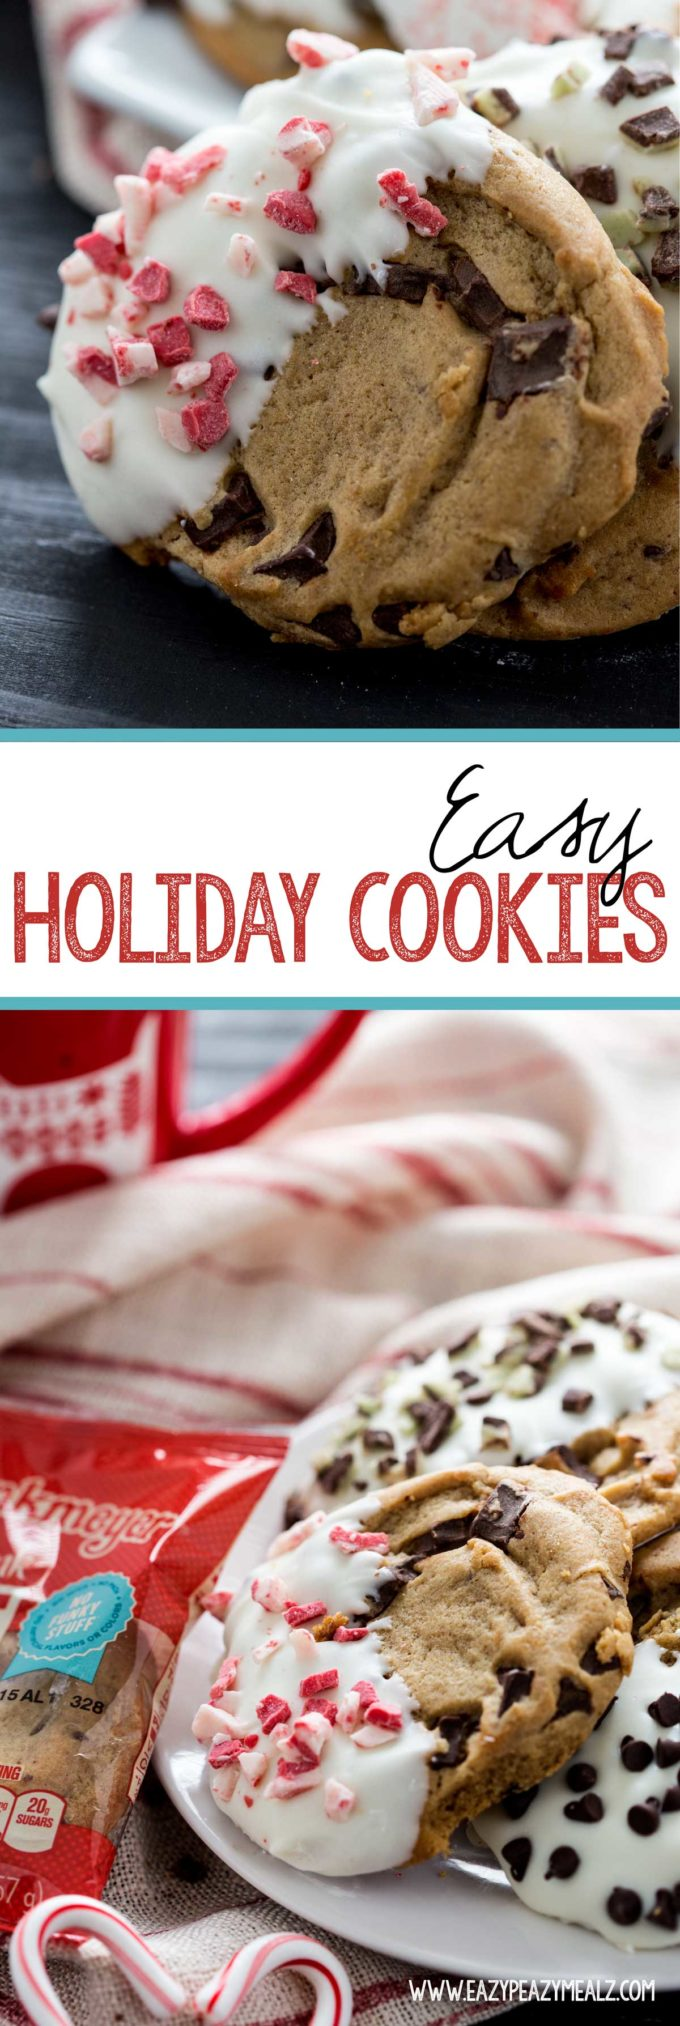 Easy Holiday Cookies take the hassle out of bringing great cookies to a party, easy holiday cookies, a simple dessert